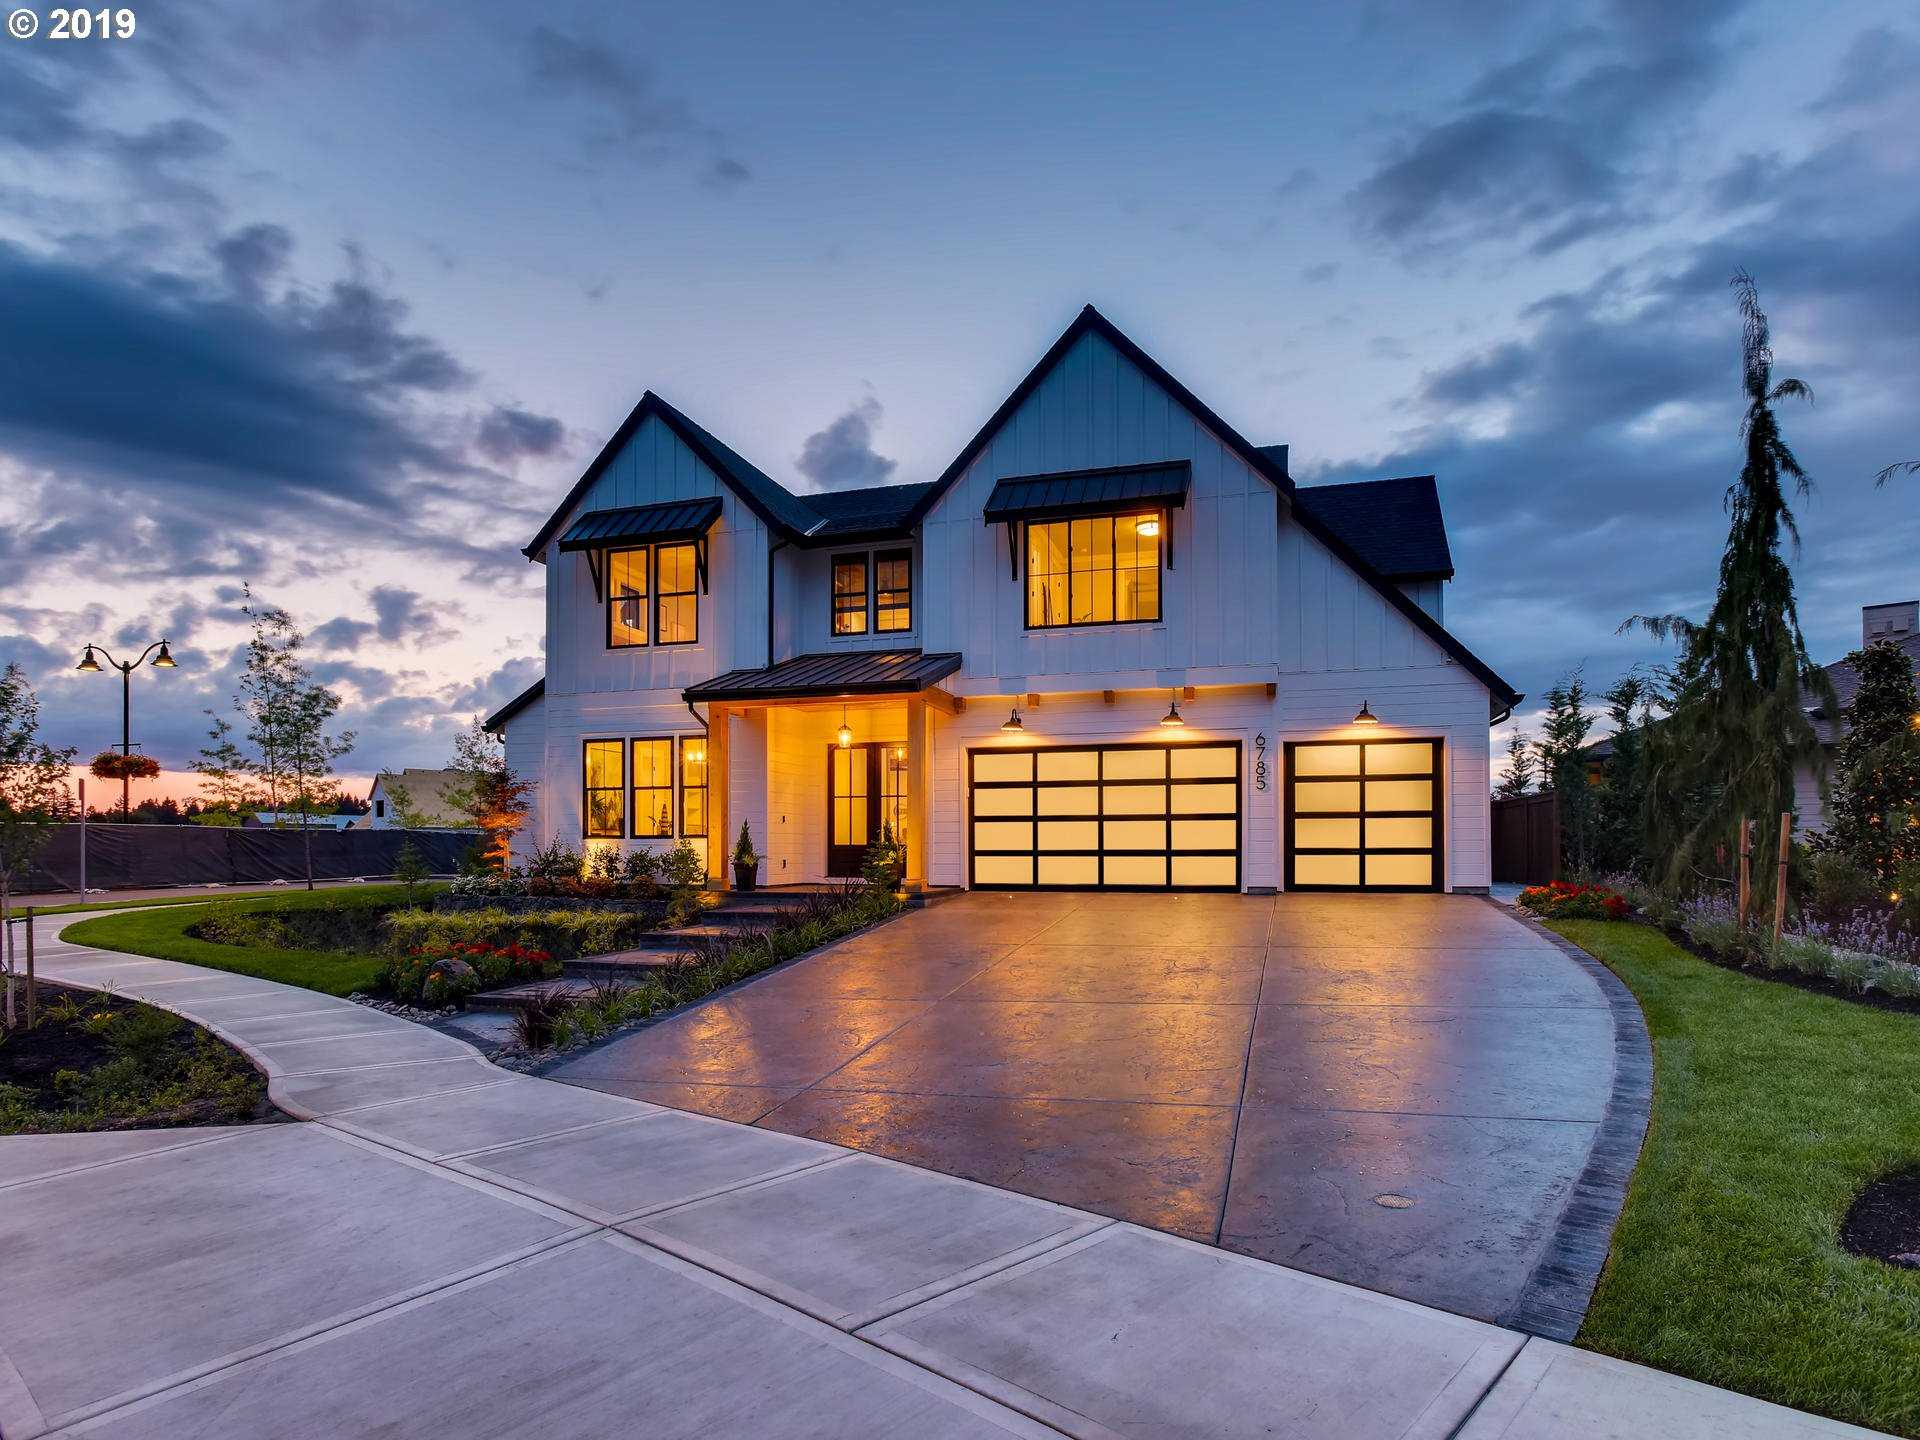 $1,495,000 - 5Br/5Ba -  for Sale in Stafford Meadows At Frog Pond, Wilsonville